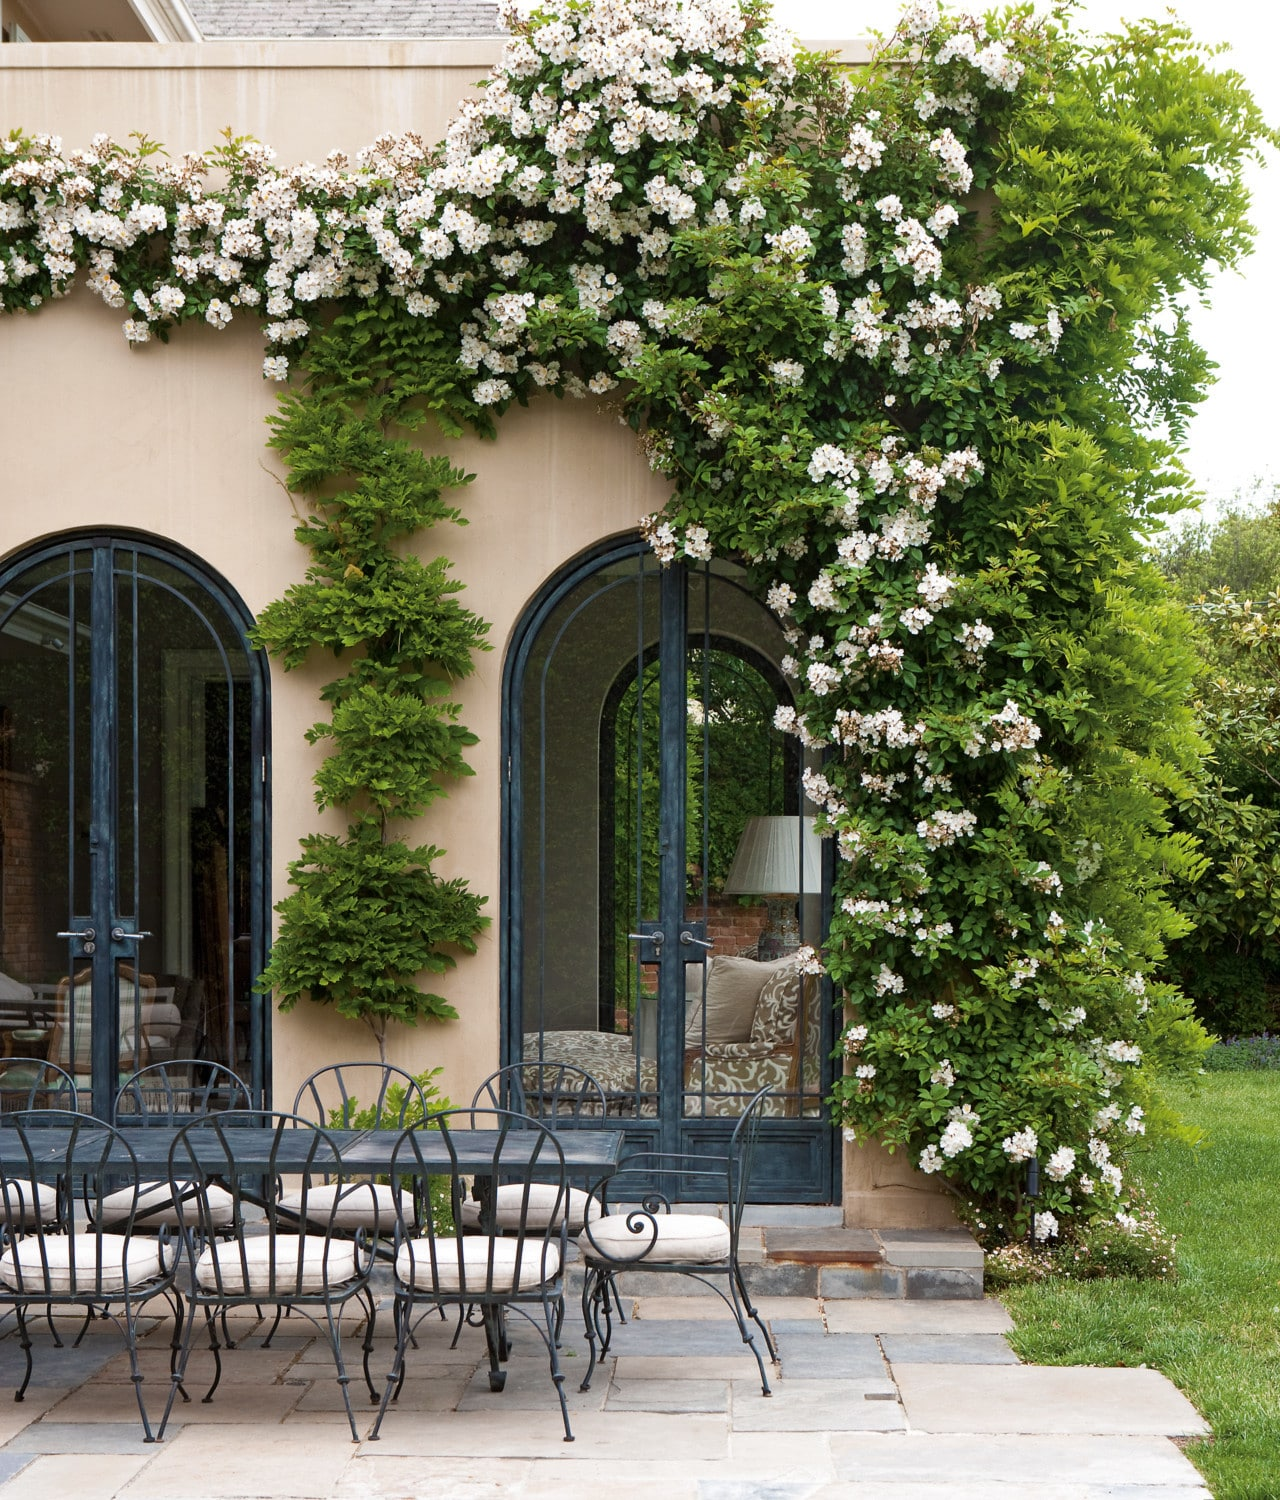 Paul Bangay On The Best Plants For Year Long Flowers And How To Have